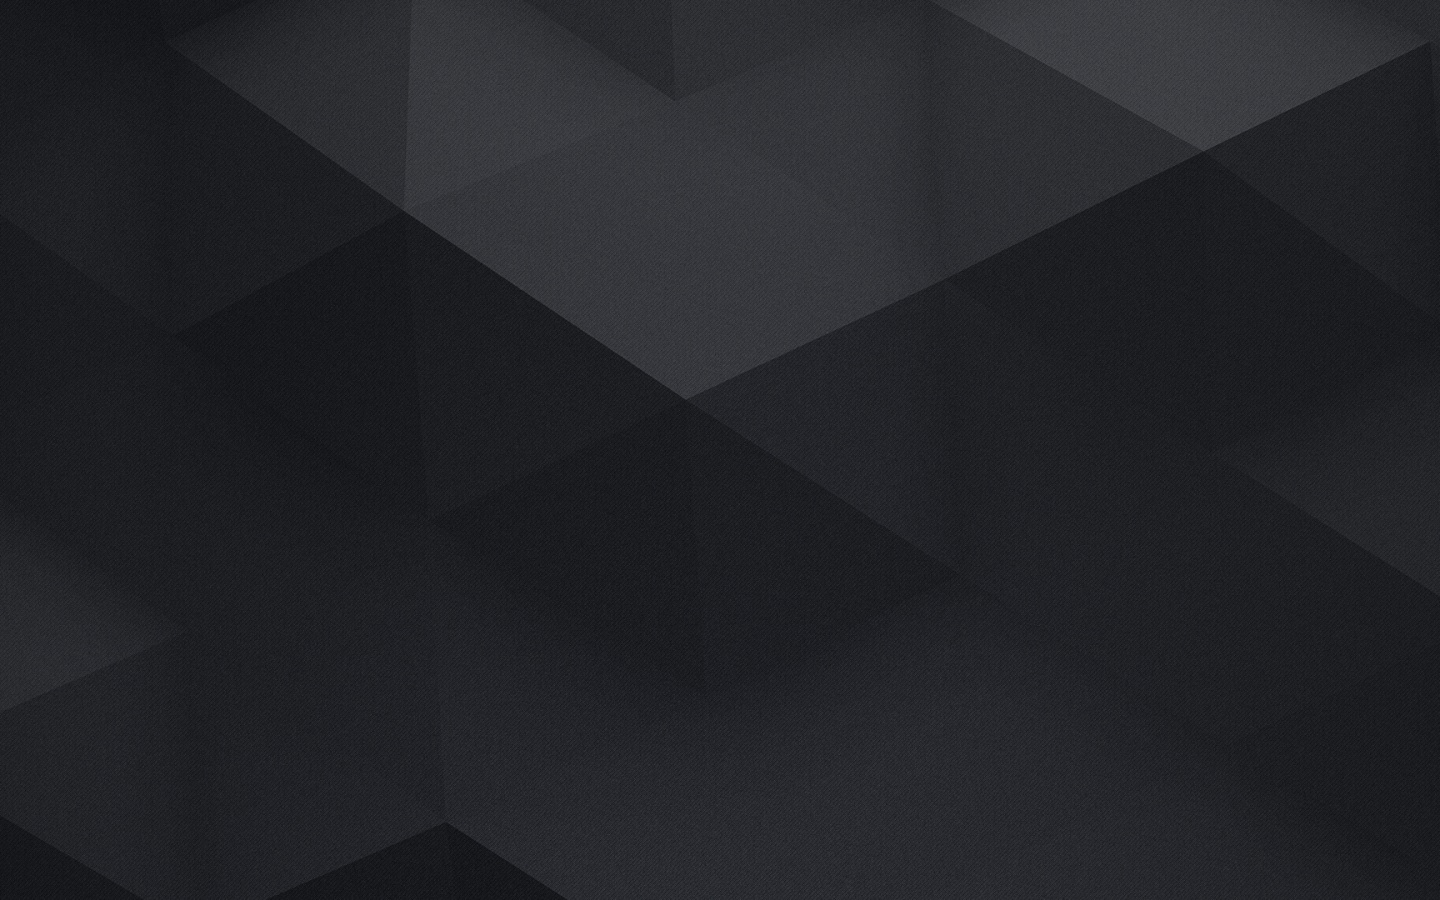 1440x900 Black Minimalistic Geometry Desktop Pc And Mac